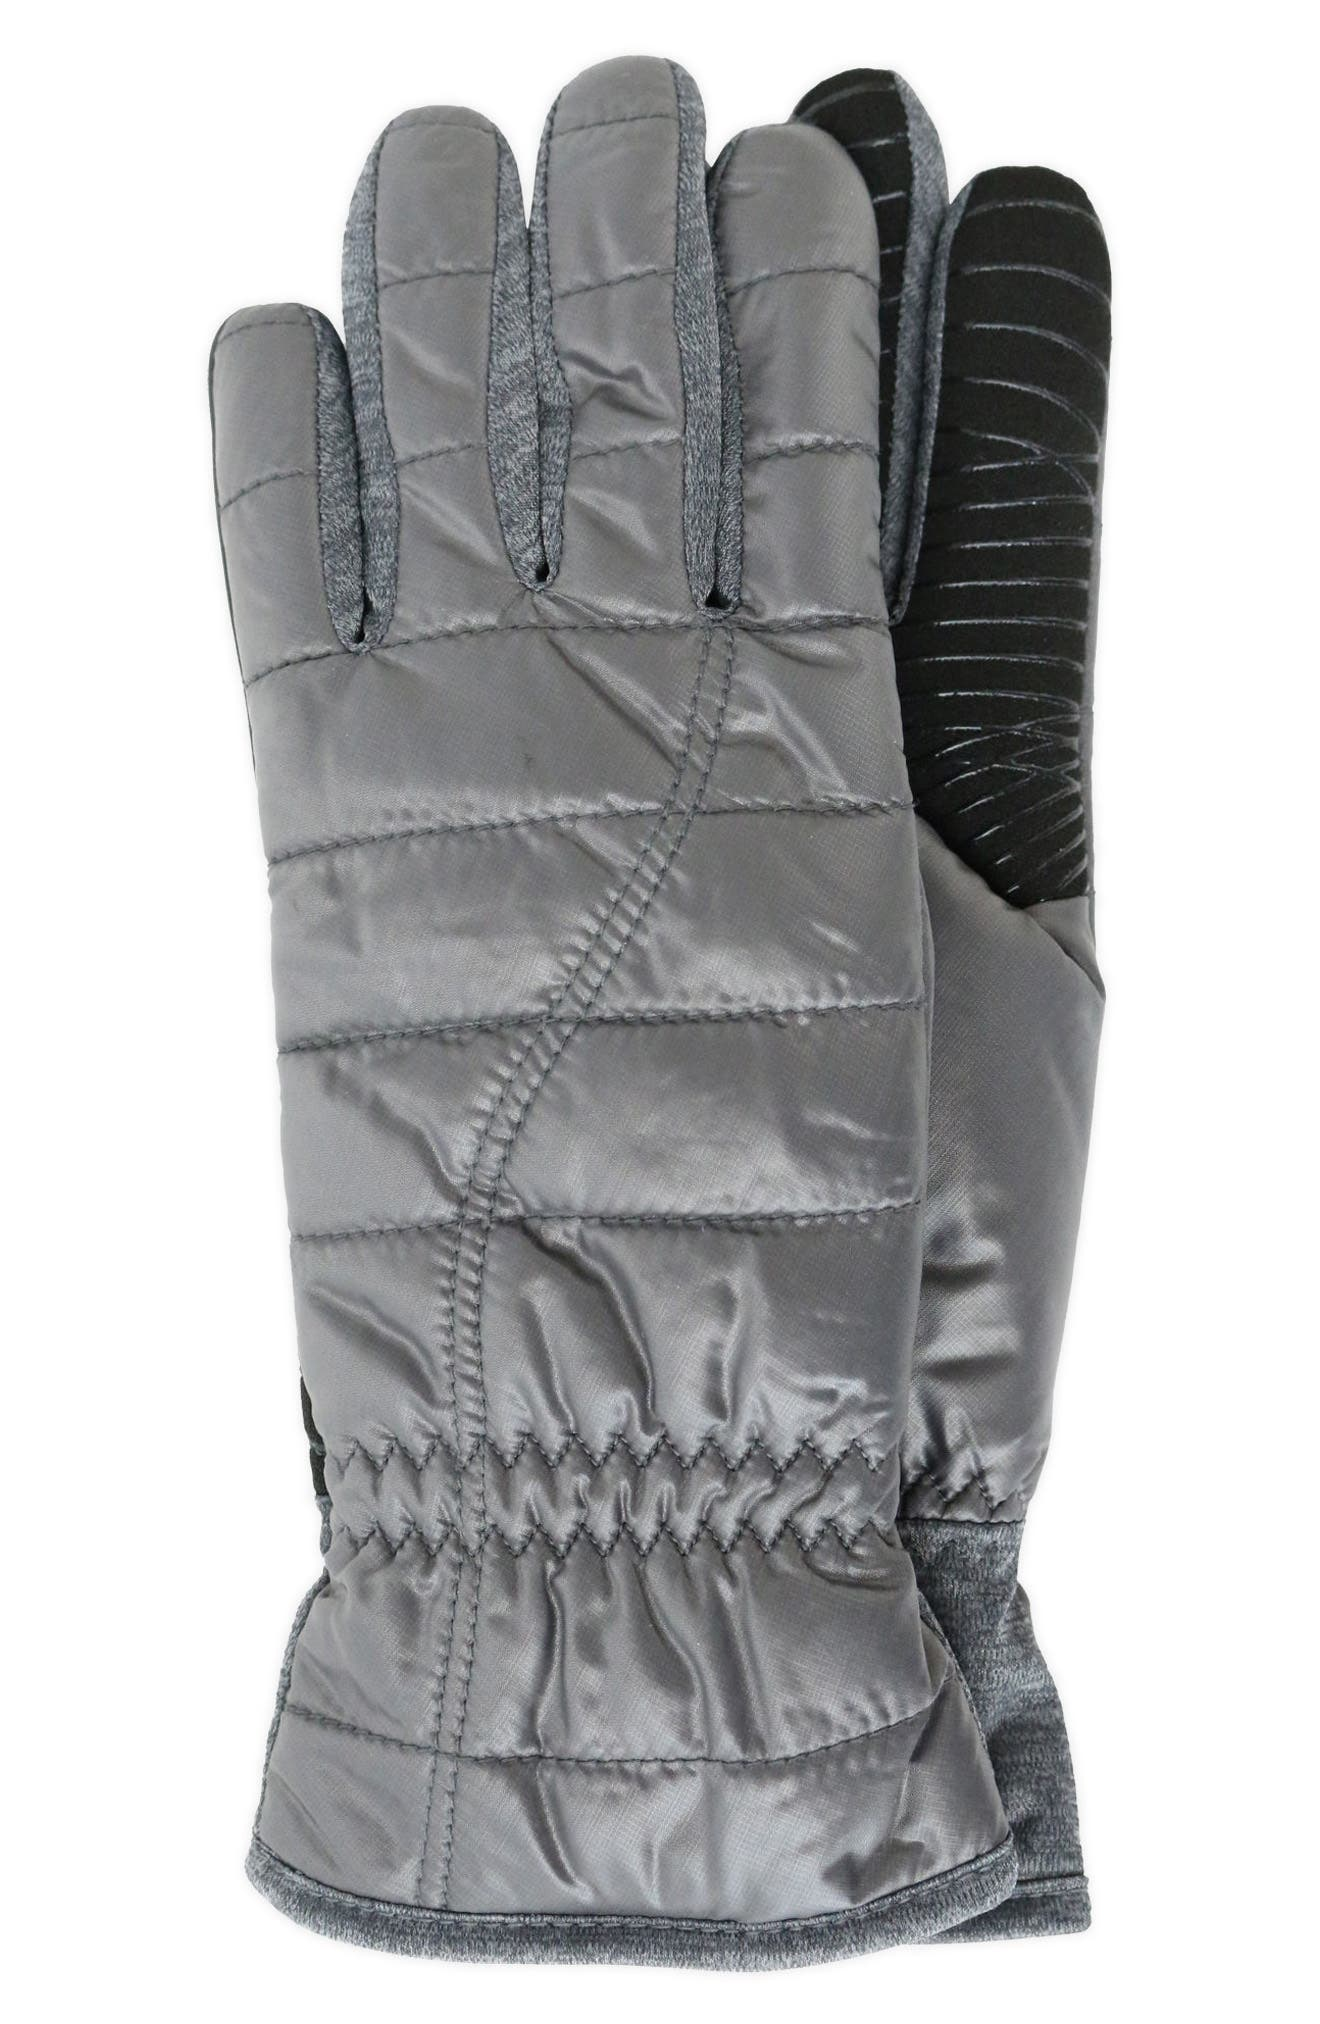 U|R Quilted Touchscreen Compatible Gloves